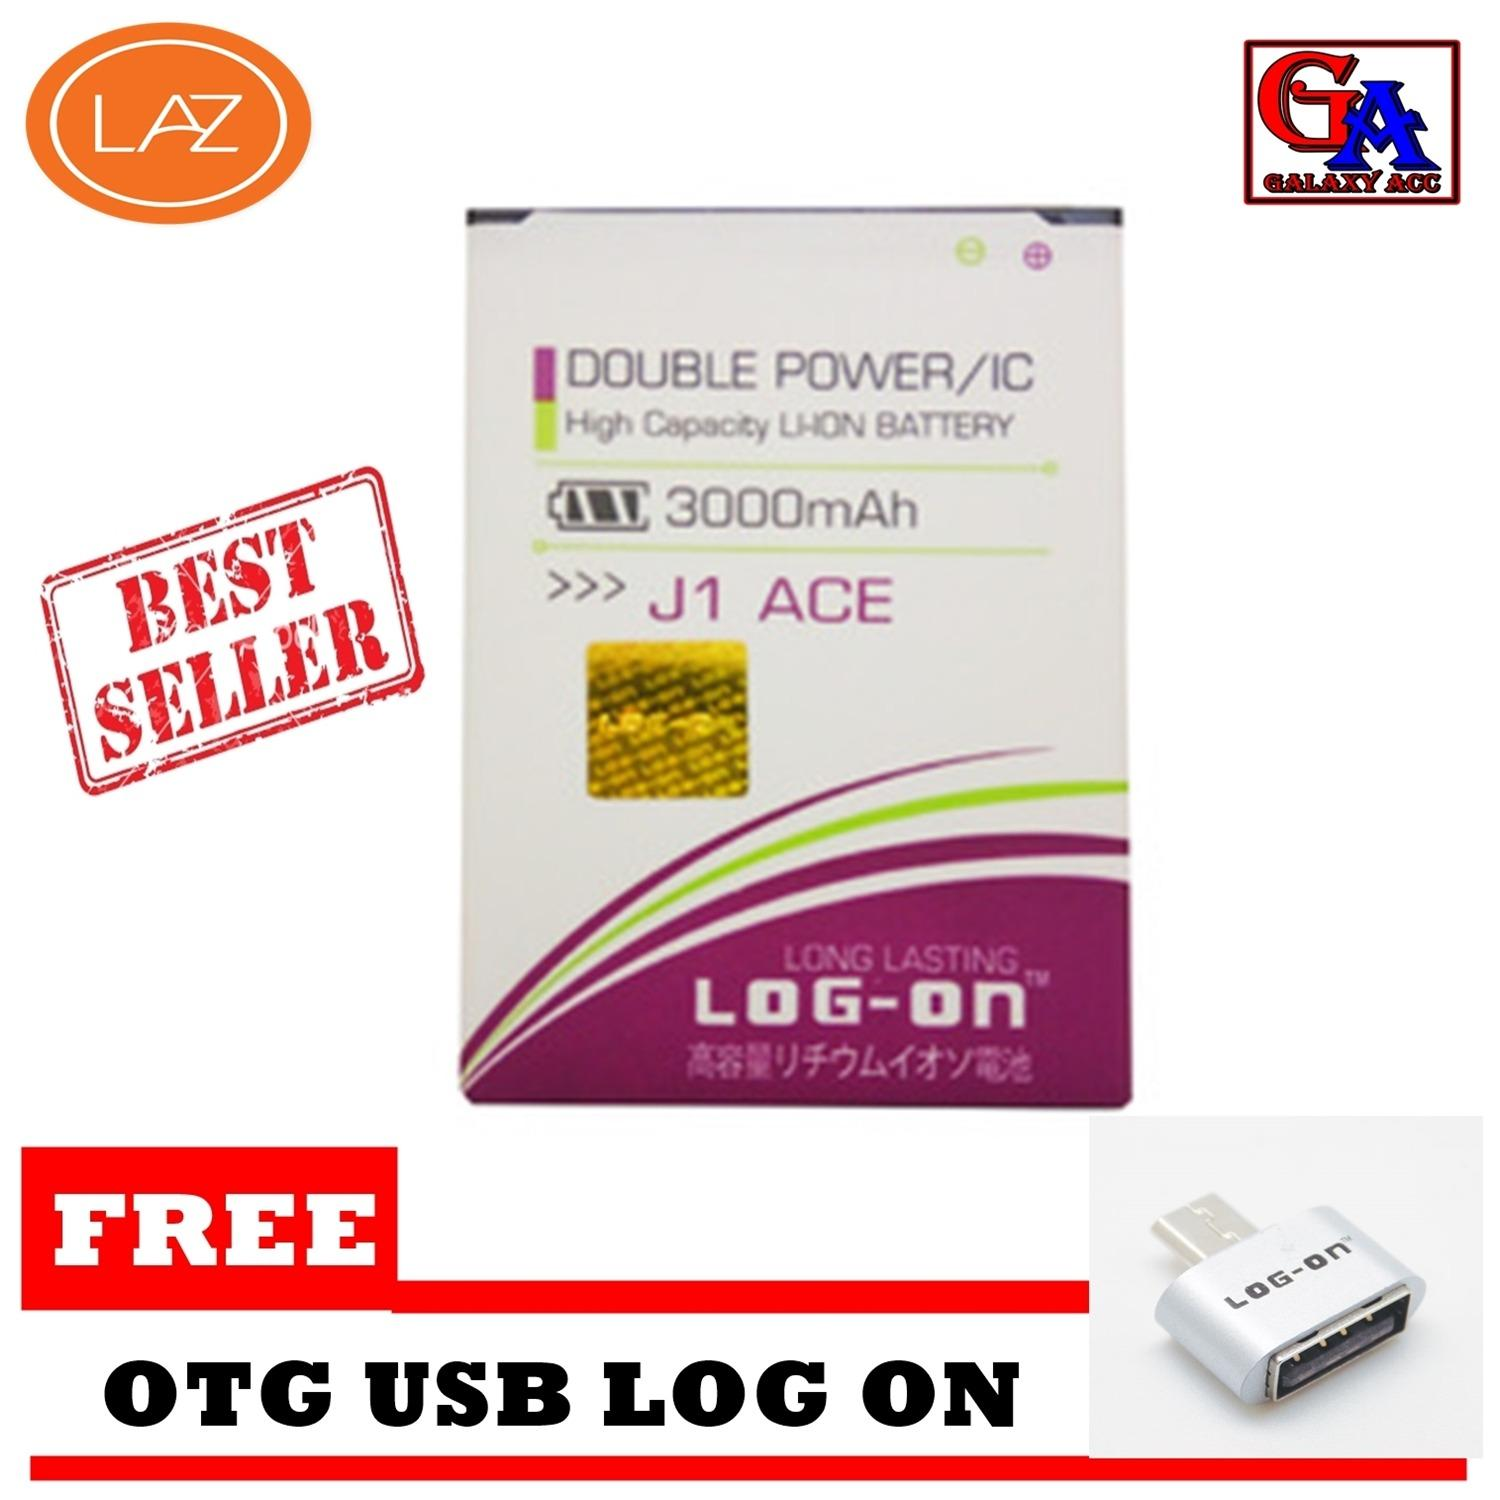 Kehebatan Baterai Advan I4d Bp 40ct 4inch 3000mah Double Power Log S5x On Samsung Galaxy J1 Ace Battery Free